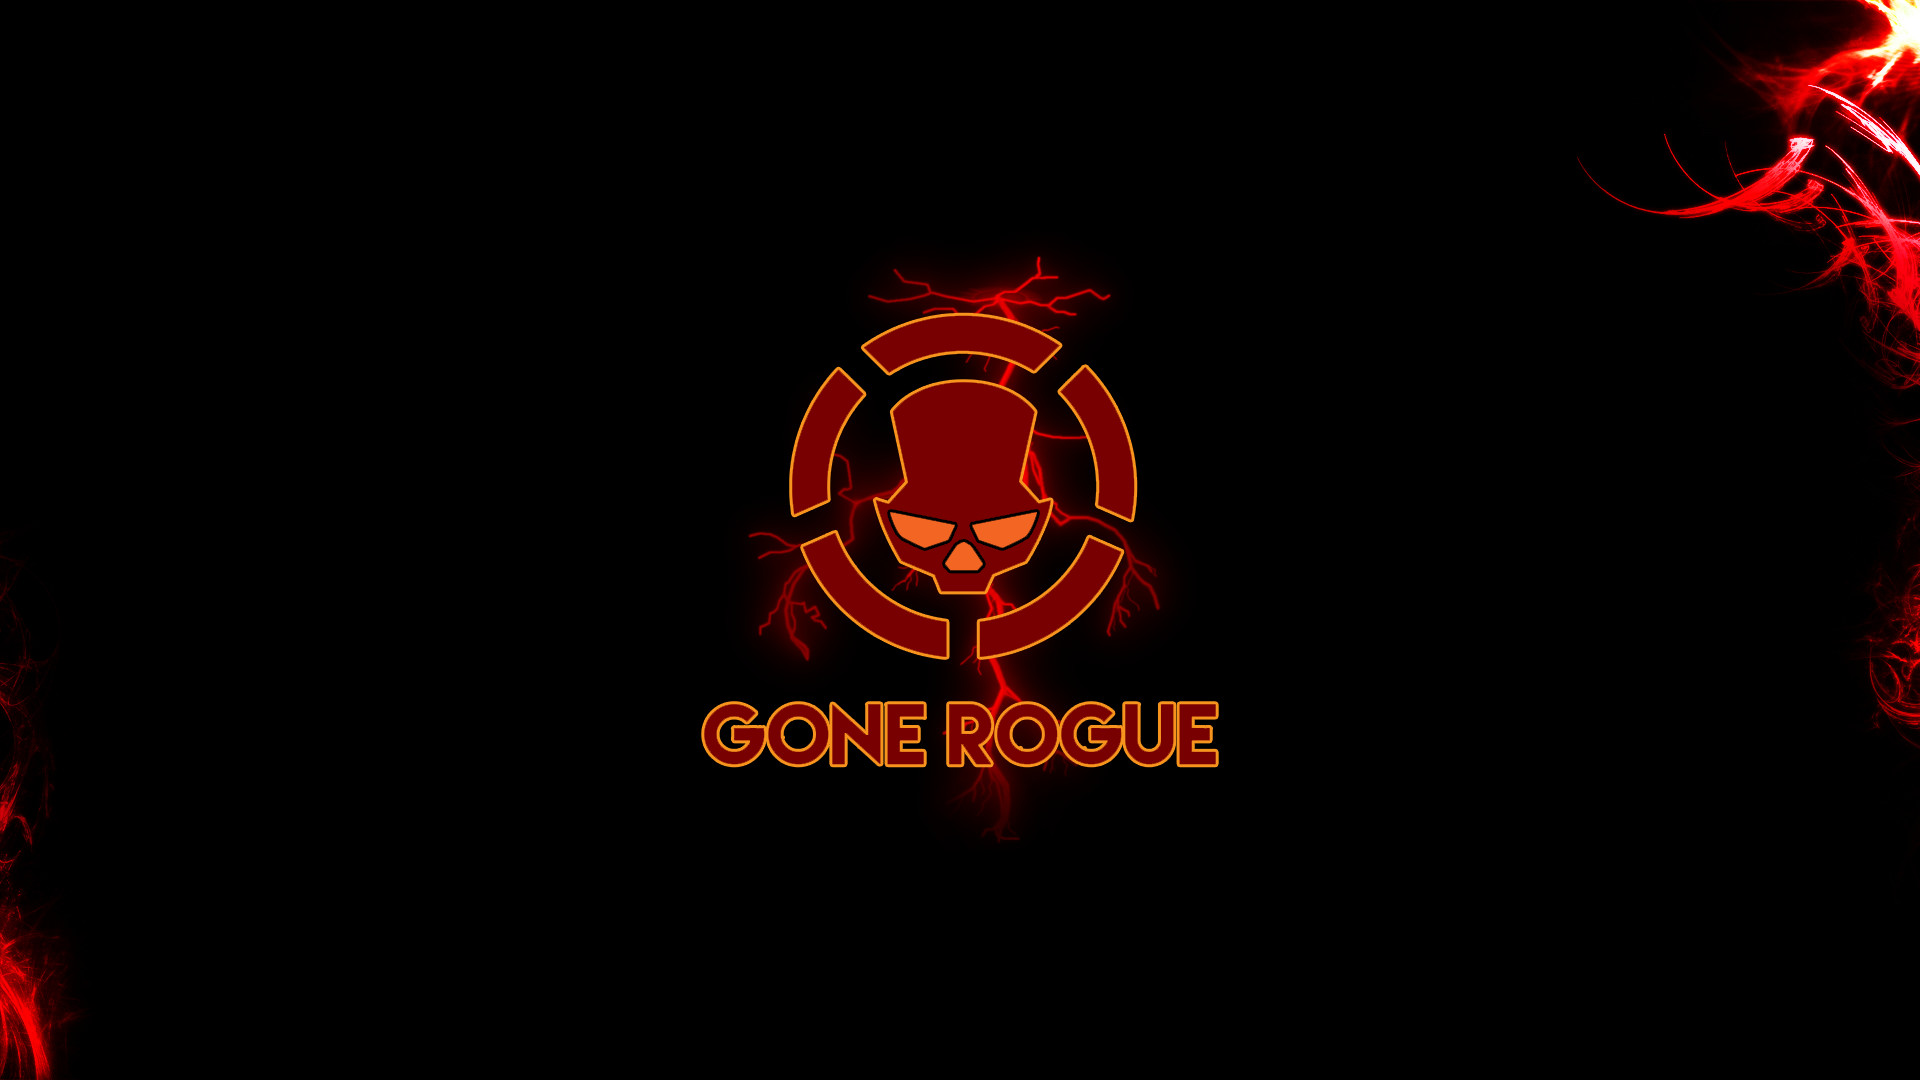 … GONE ROGUE – Tom Clancy's The Division Wallpaper by Evanjoe251